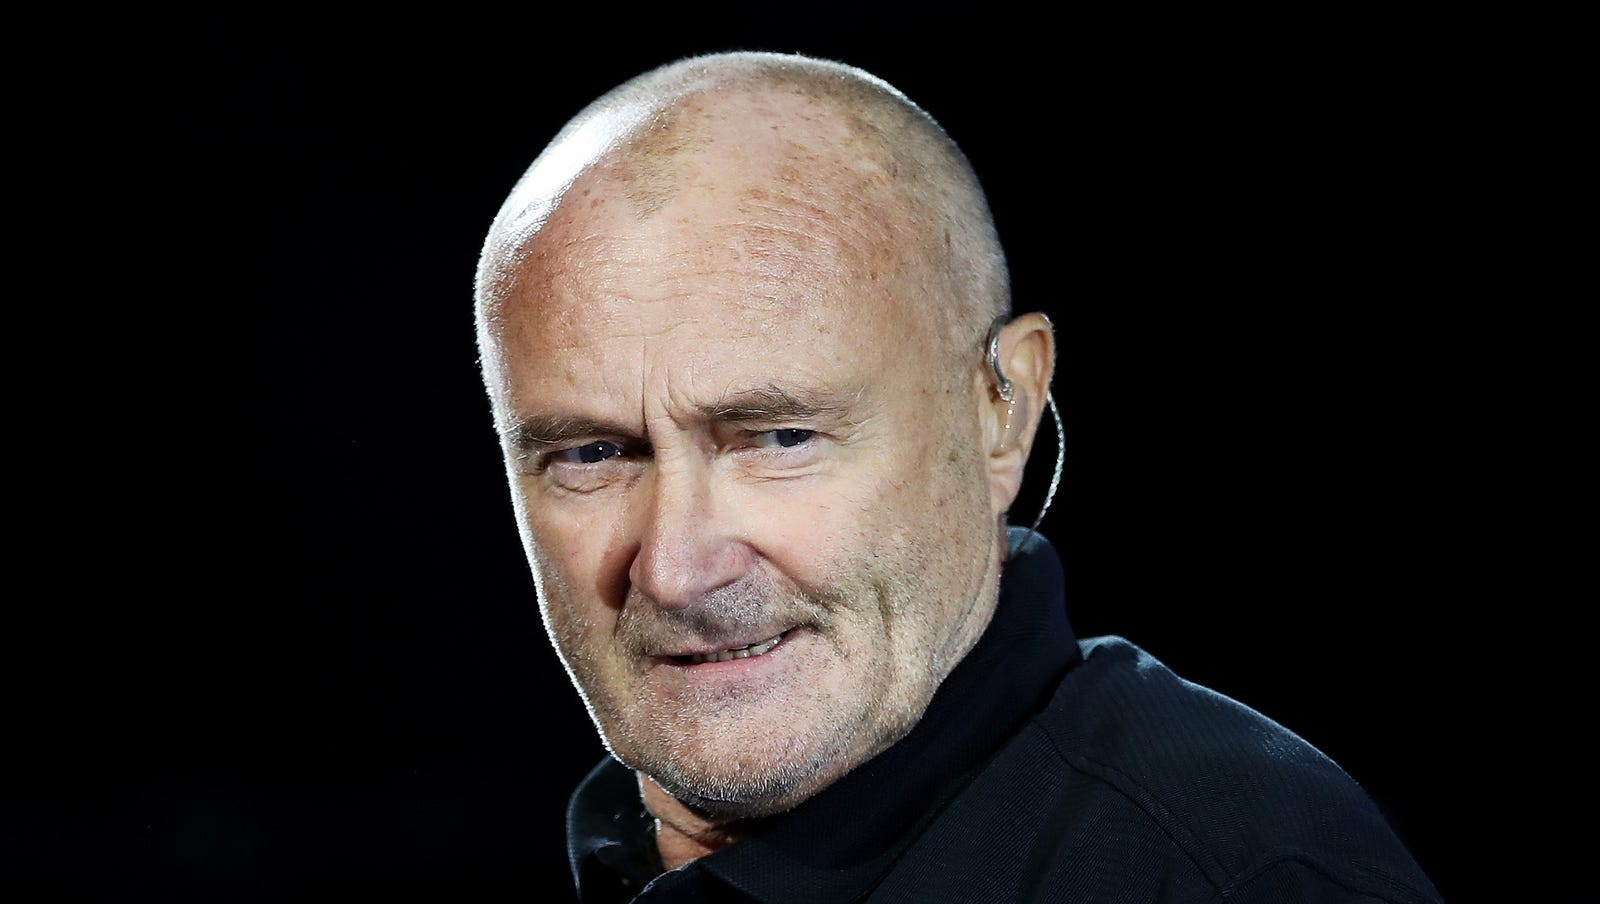 Phil Collins headed to Little Caesars Arena in fall